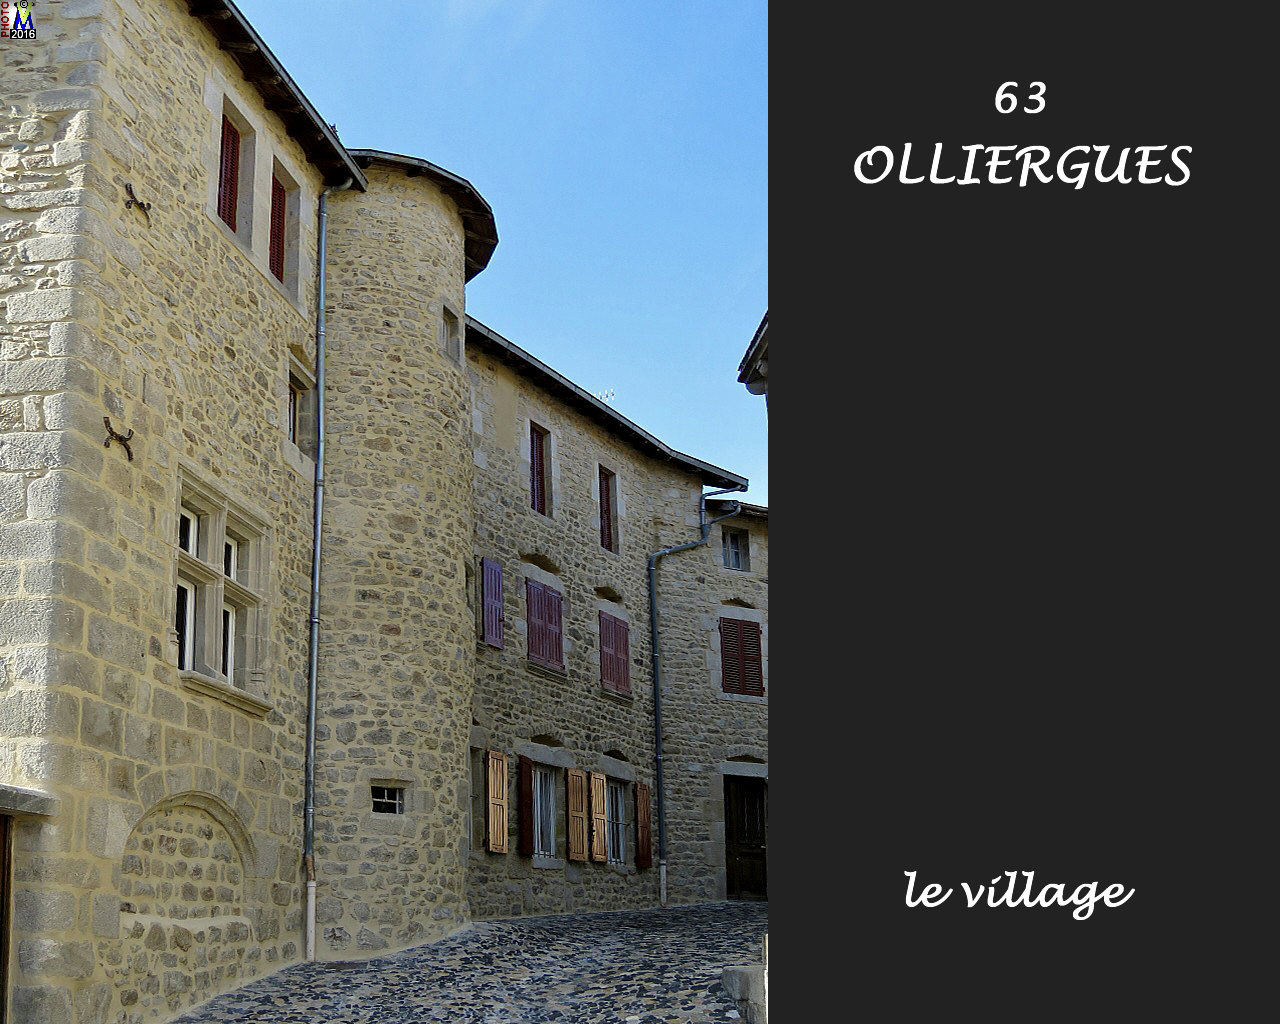 63OLLIERGUES_village_126.jpg